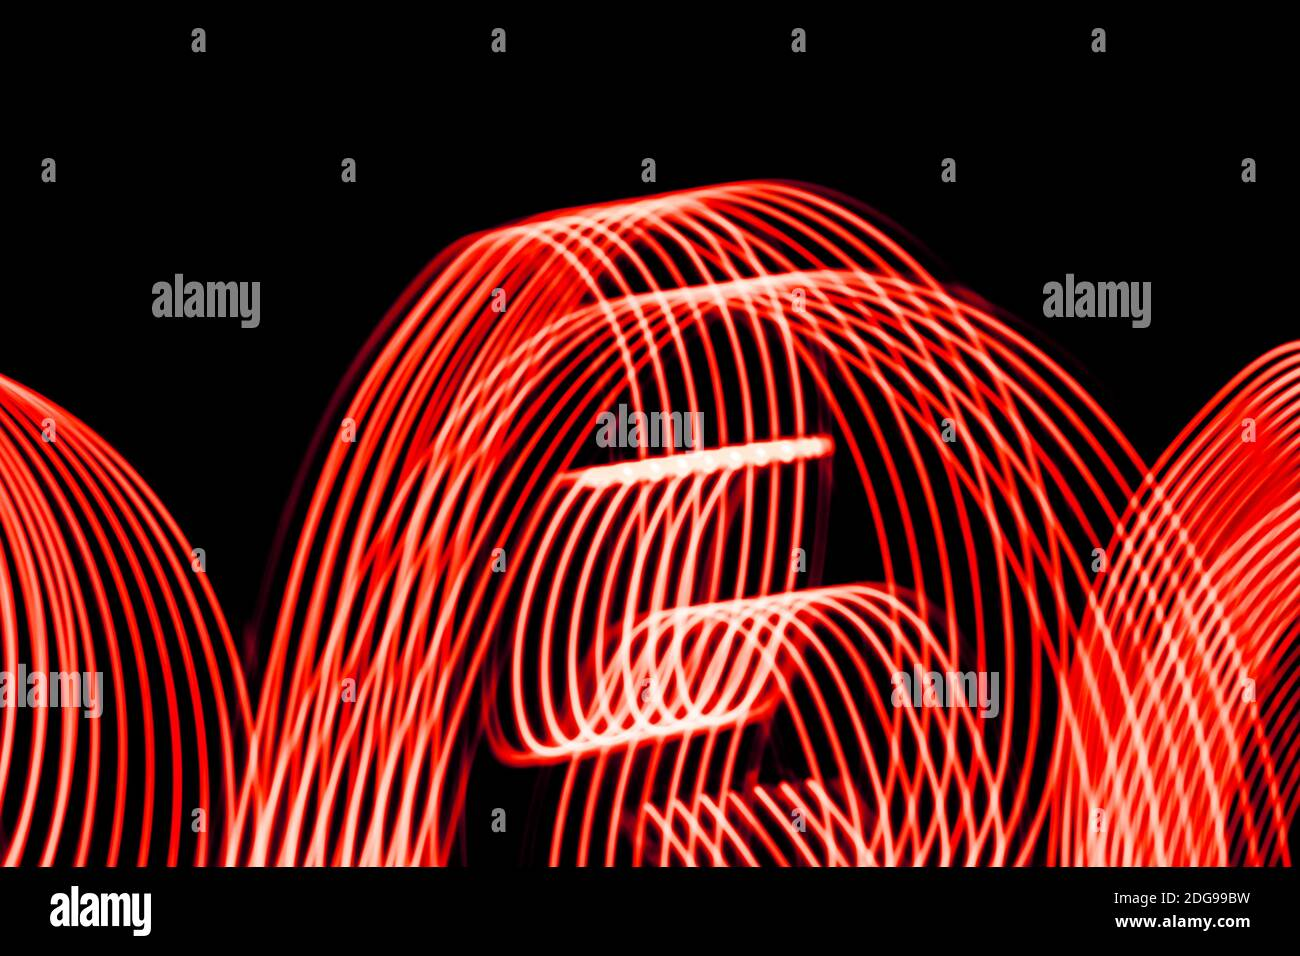 Bright red spiral patterns from light strips on a black background Stock Photo